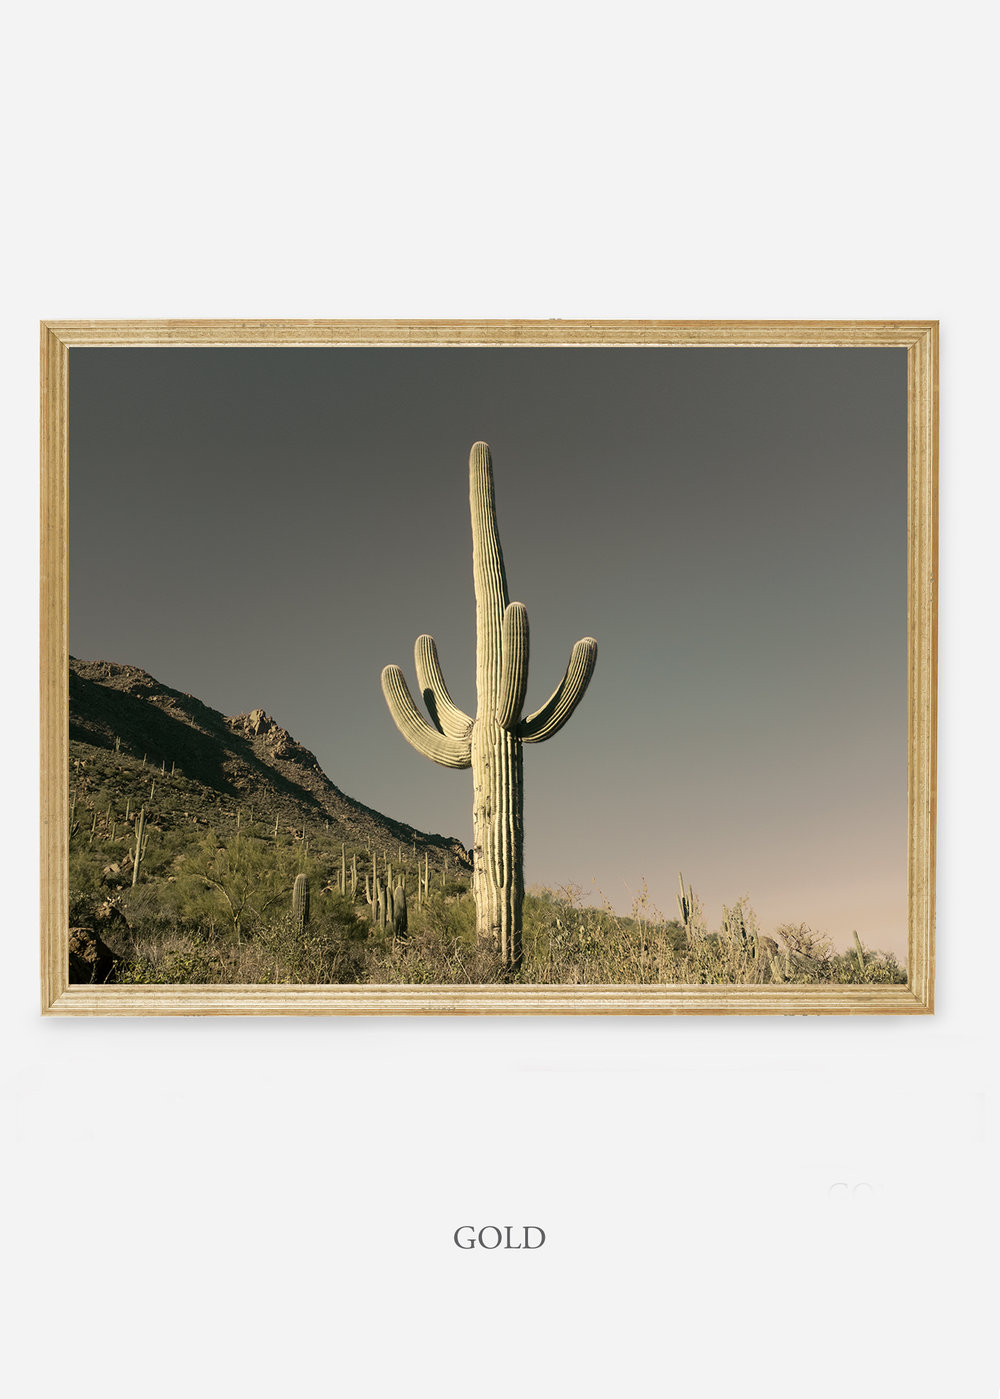 nomat-goldframe-saguaroNo.19-wildercalifornia-art-wallart-cactusprint-homedecor-prints-arizona-botanical-artwork-interiordesign.jpg